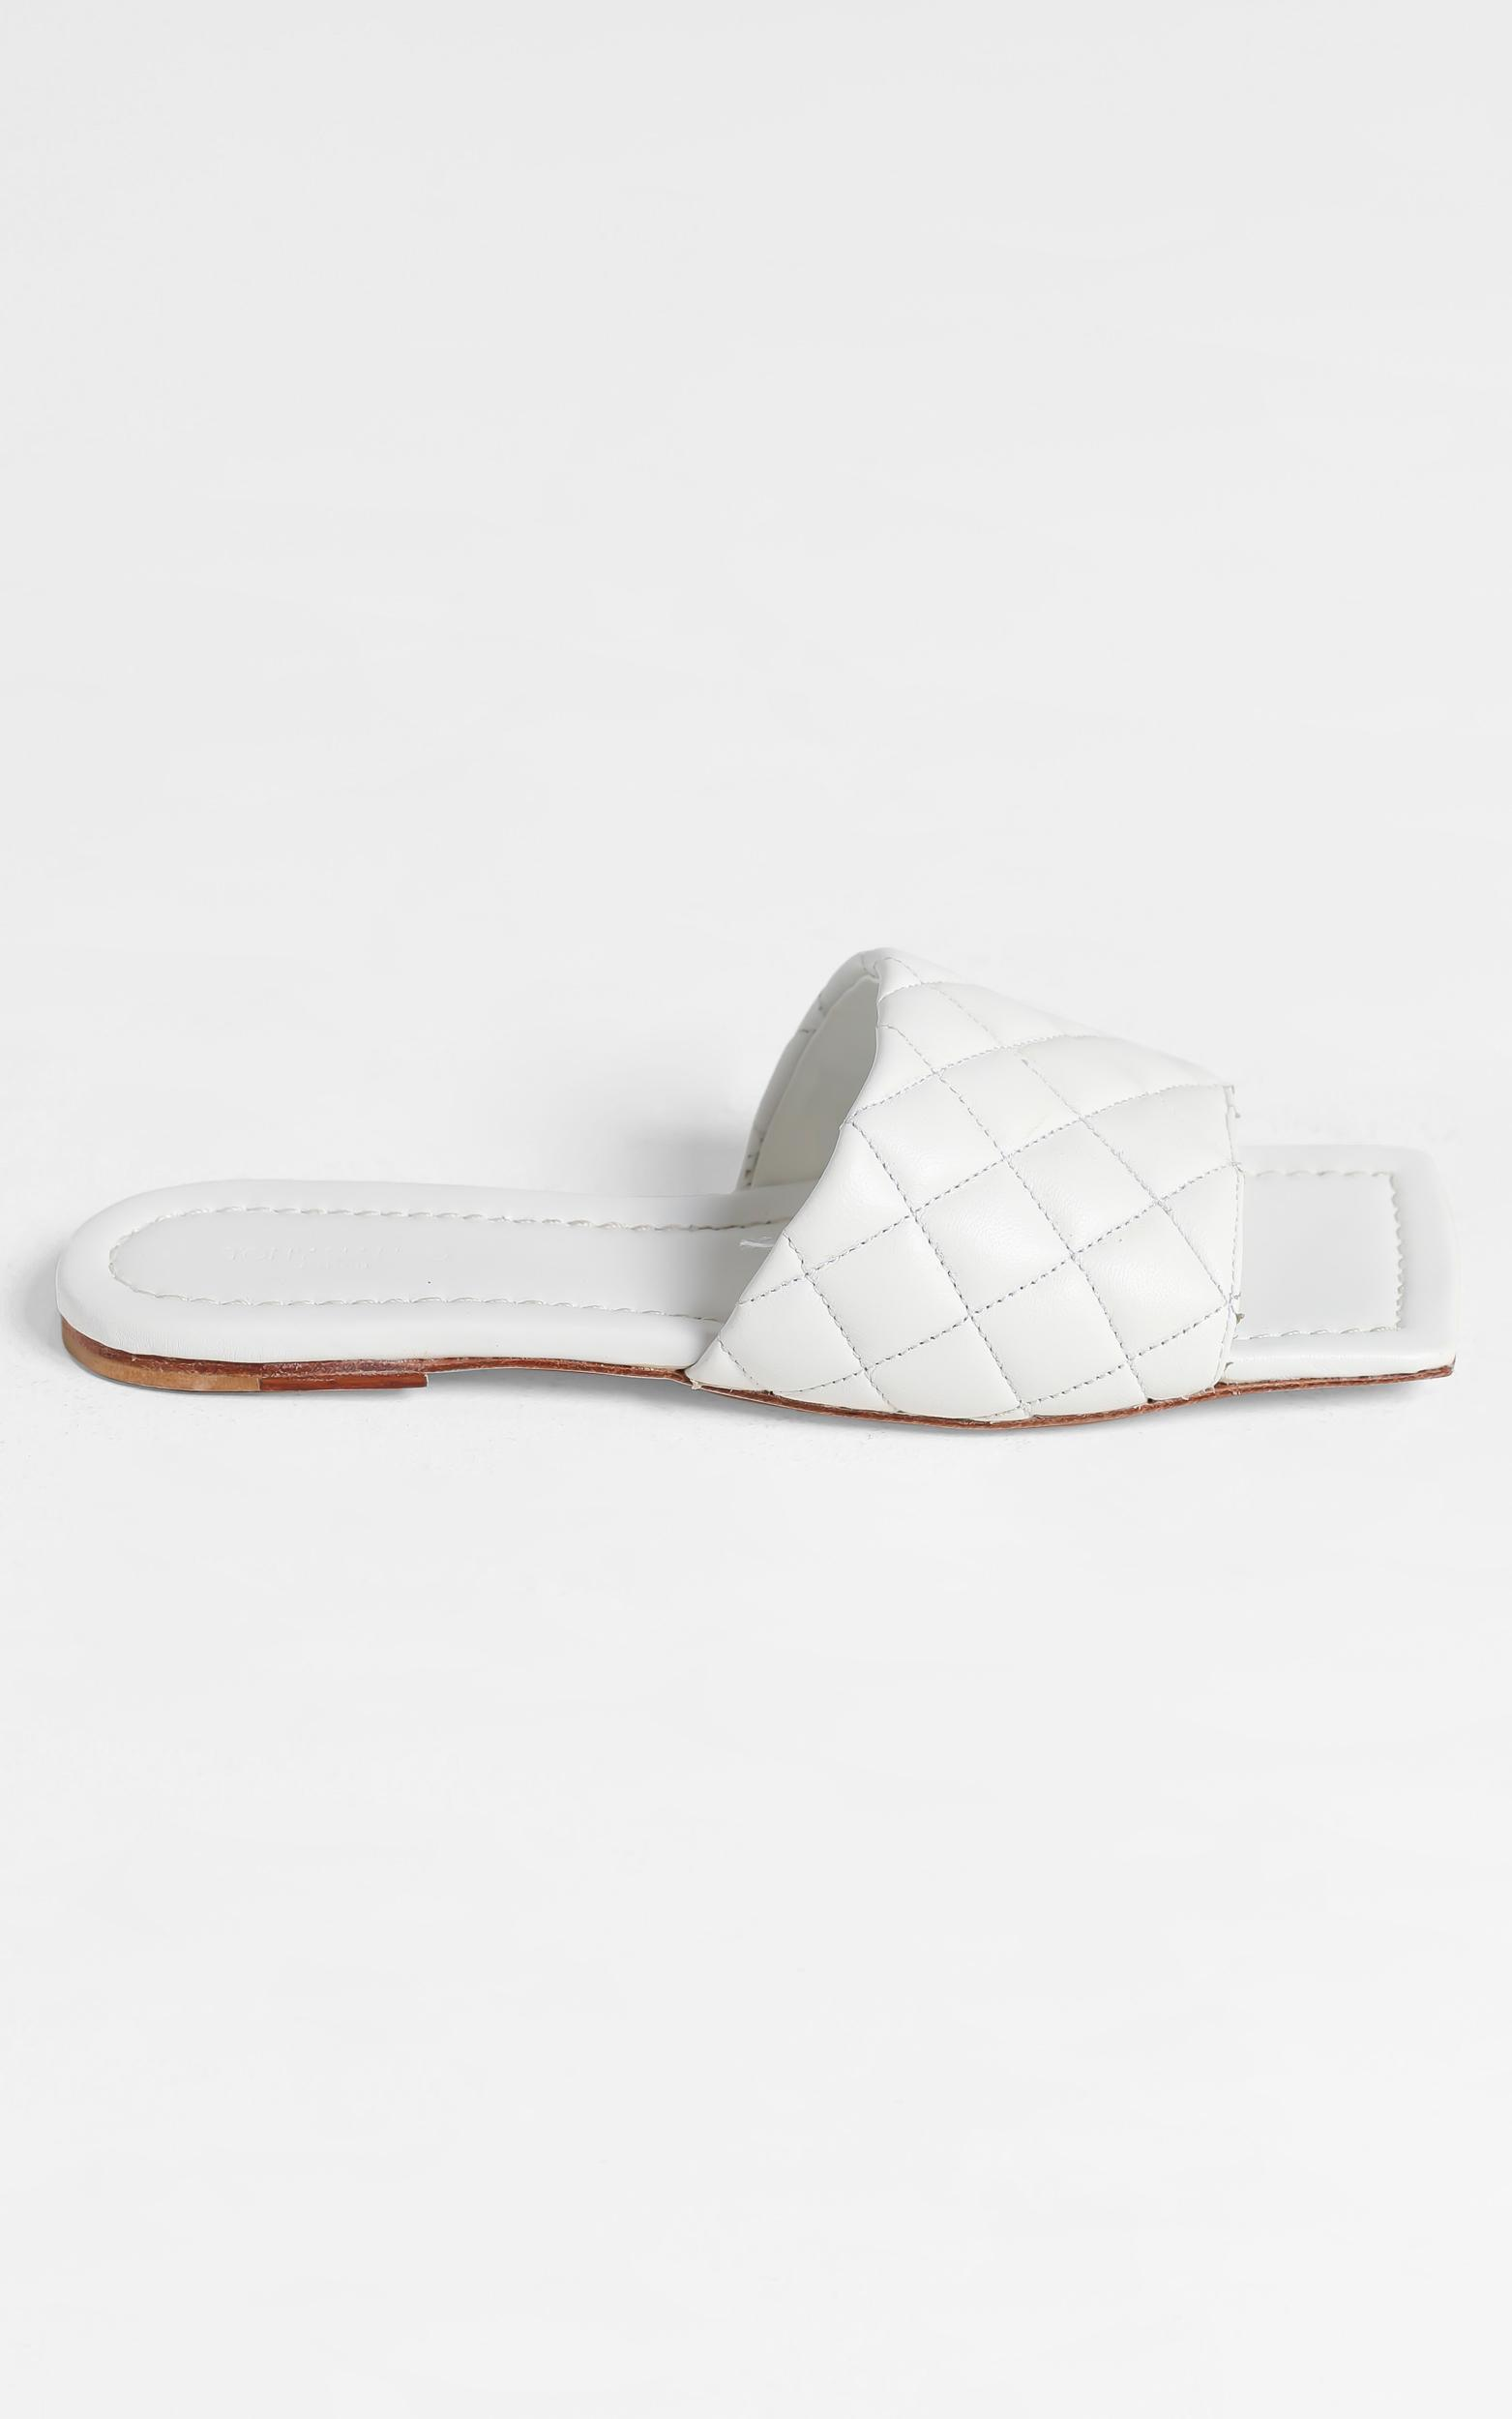 Tony Bianco - Geena Sandals in White Sheep Napa - 05, WHT2, hi-res image number null